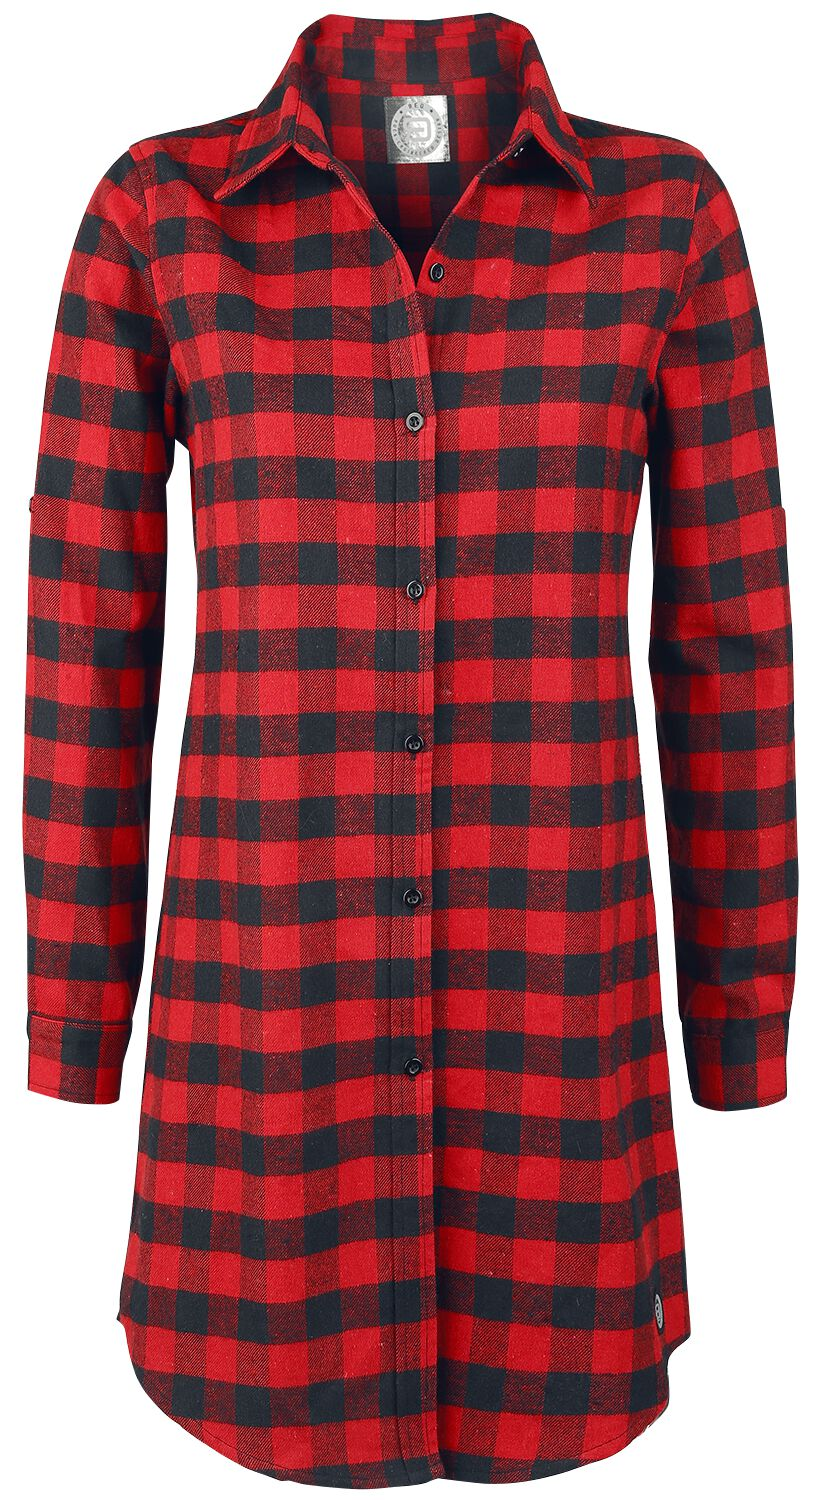 Image of   RED by EMP Checkered Oversize Shirt Girlie Skjorte rød-sort